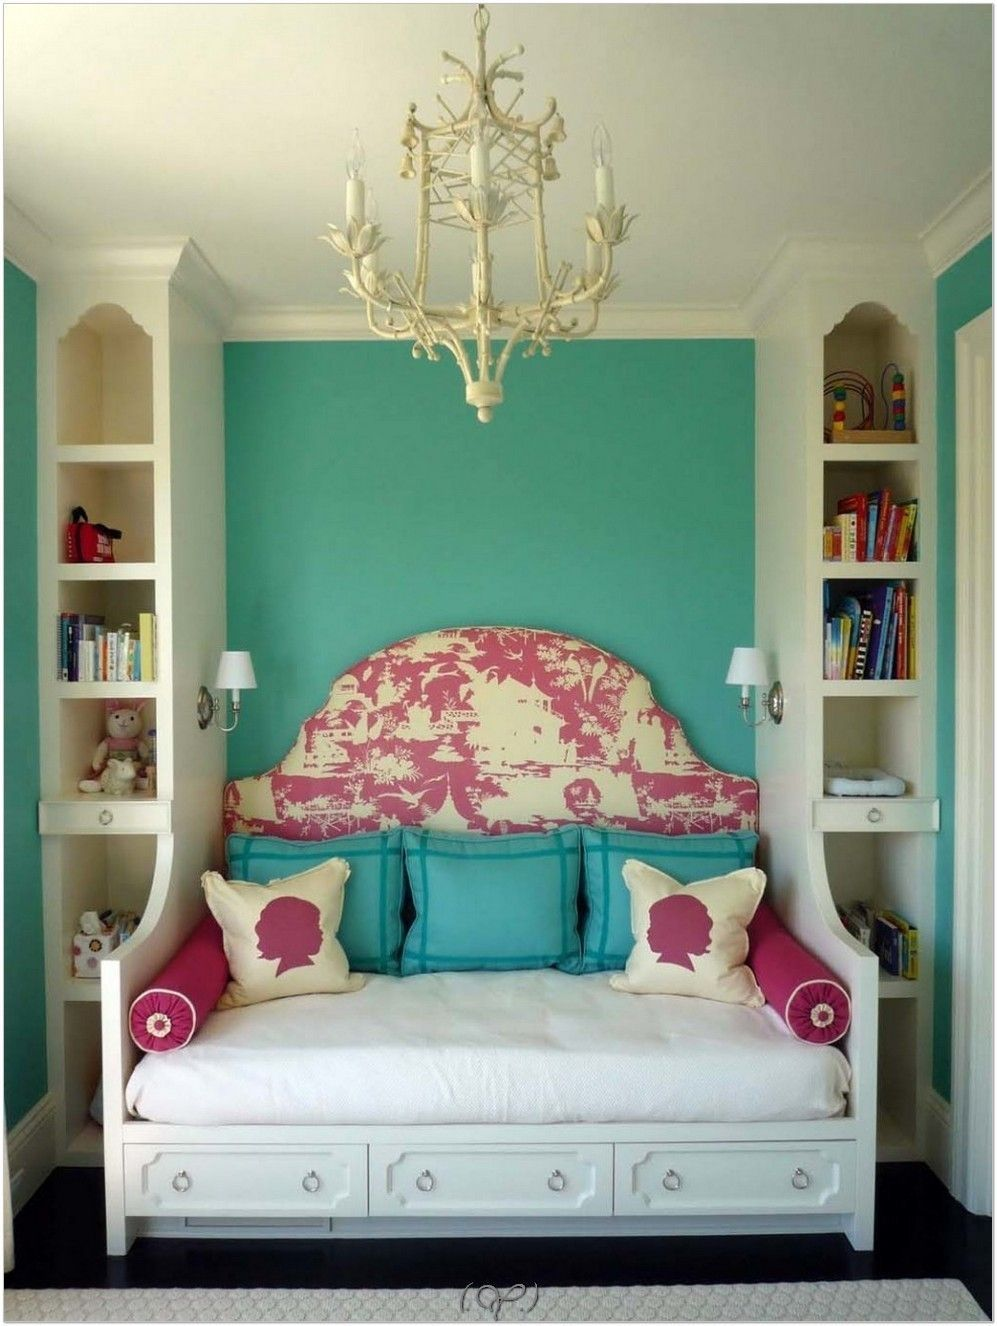 Awesome 46 Small Bedroom Ideas for Space